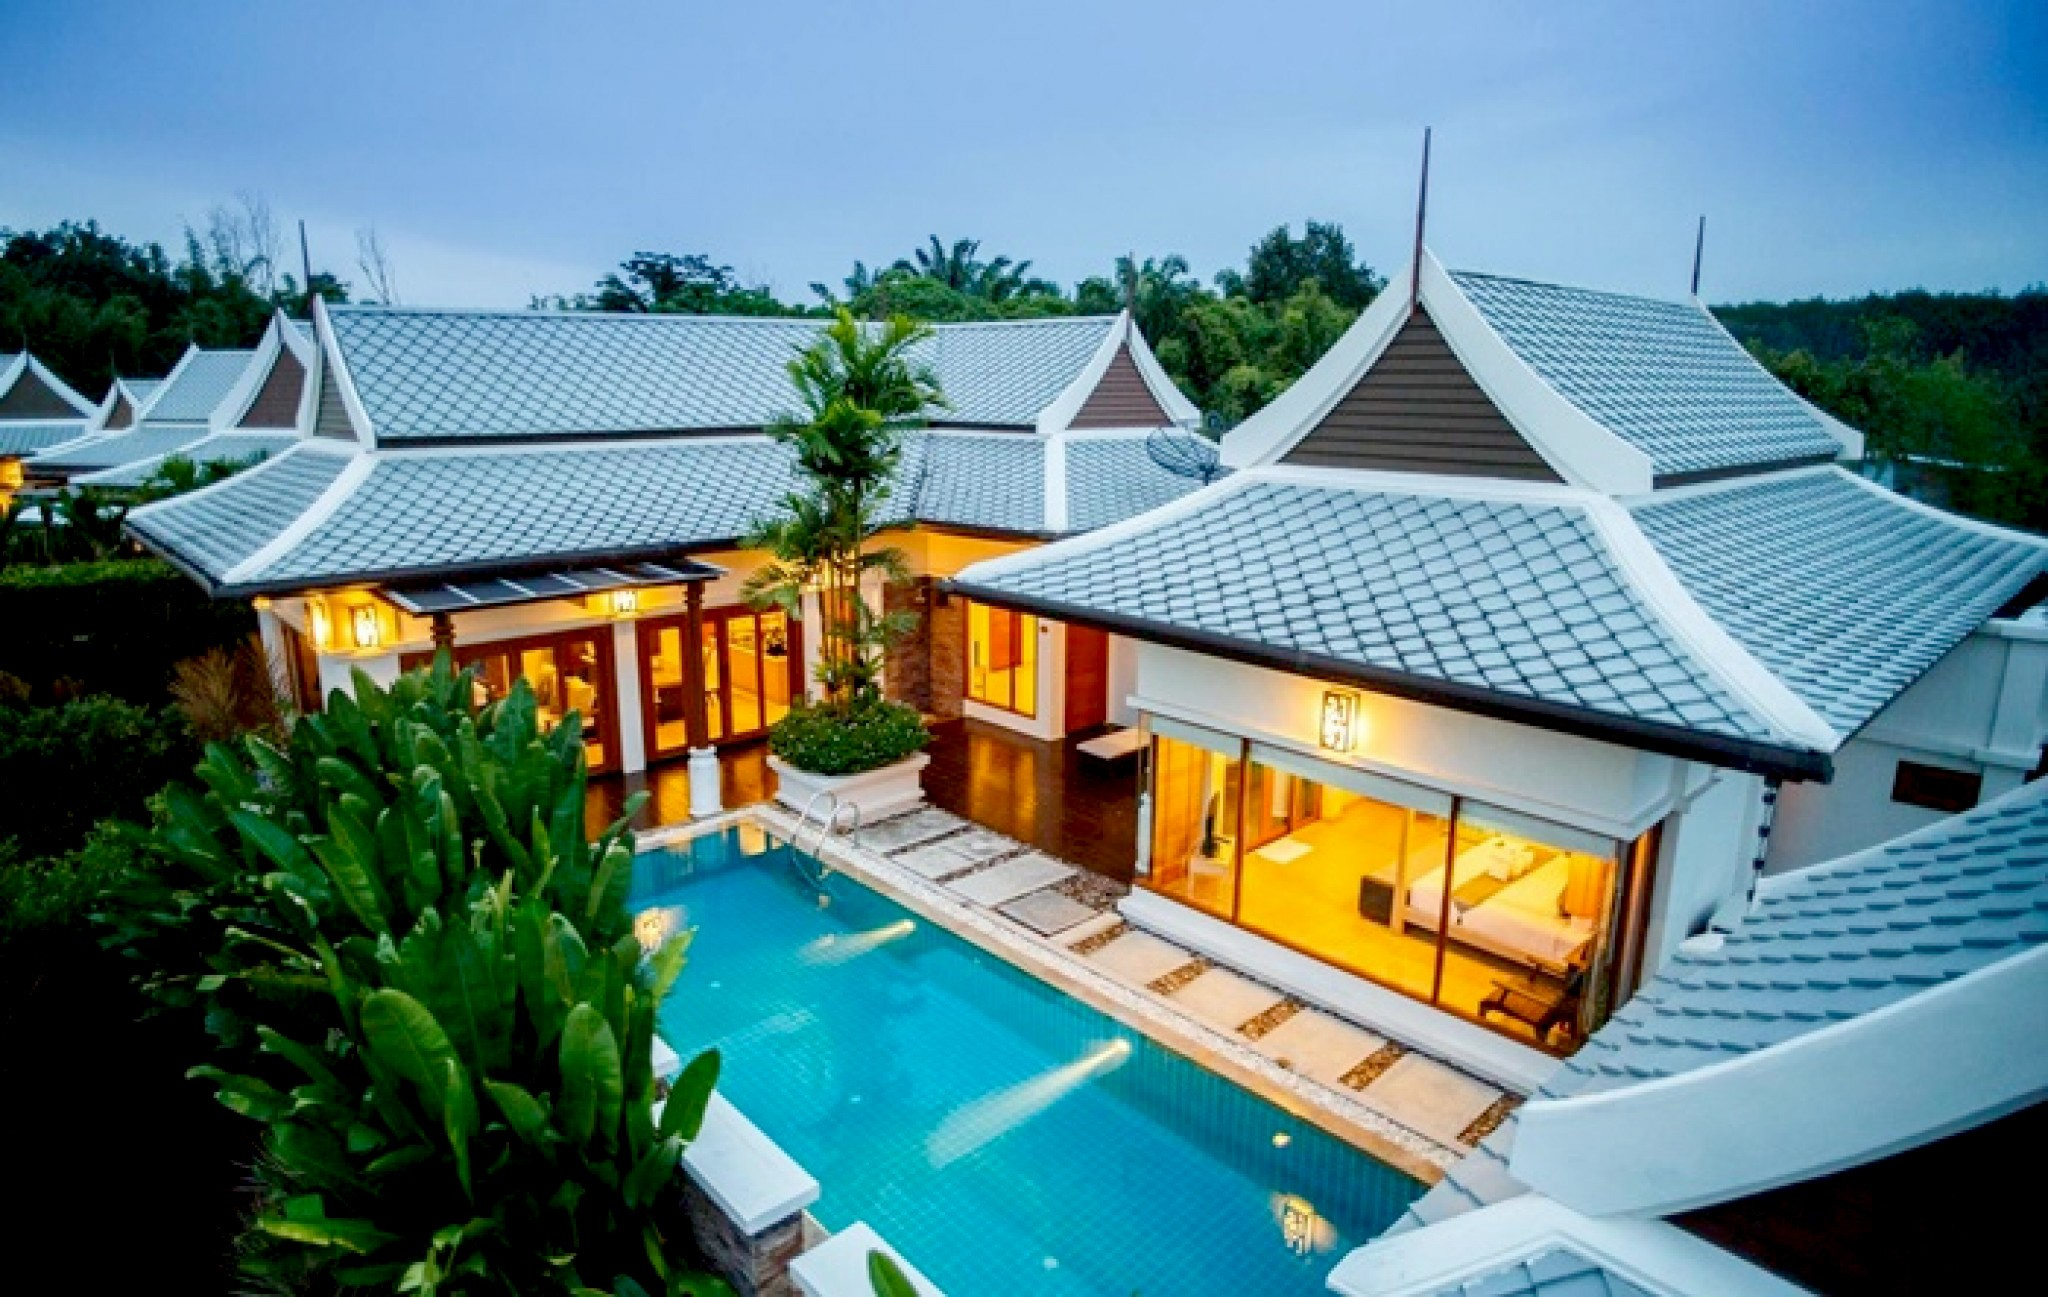 WELCOME to Pimann Buri Pool Villas